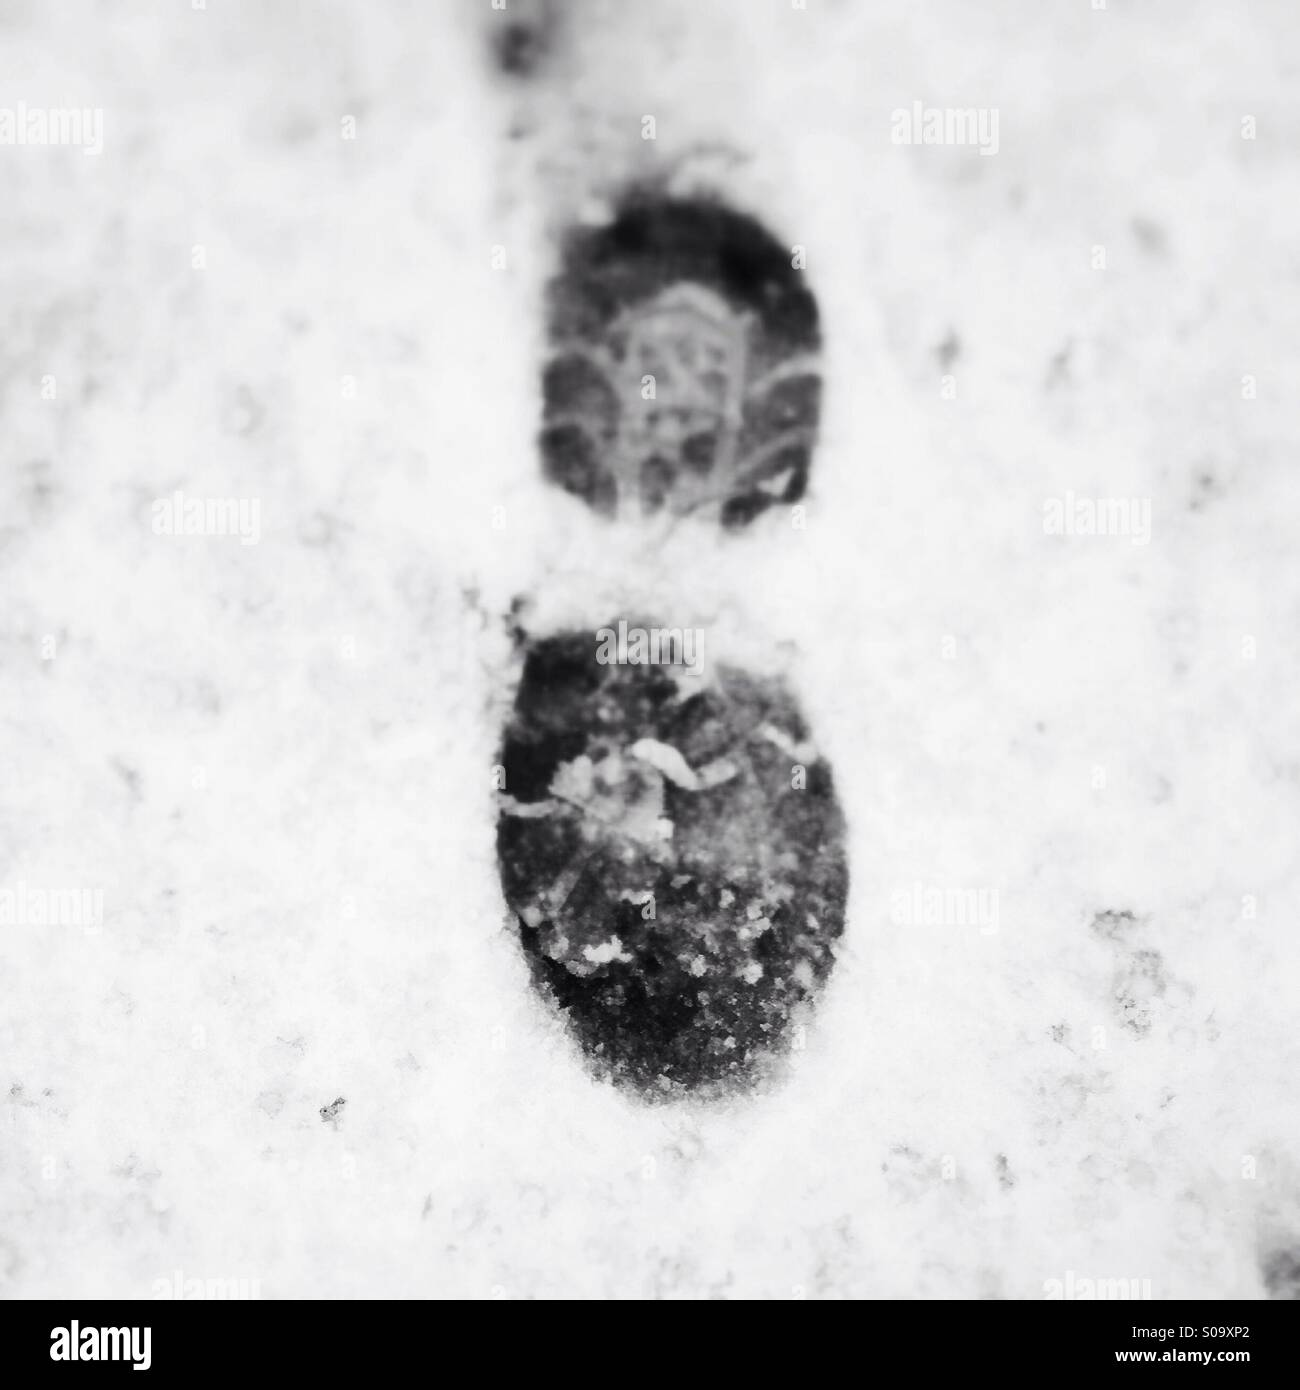 Footprint in the snow - Stock Image